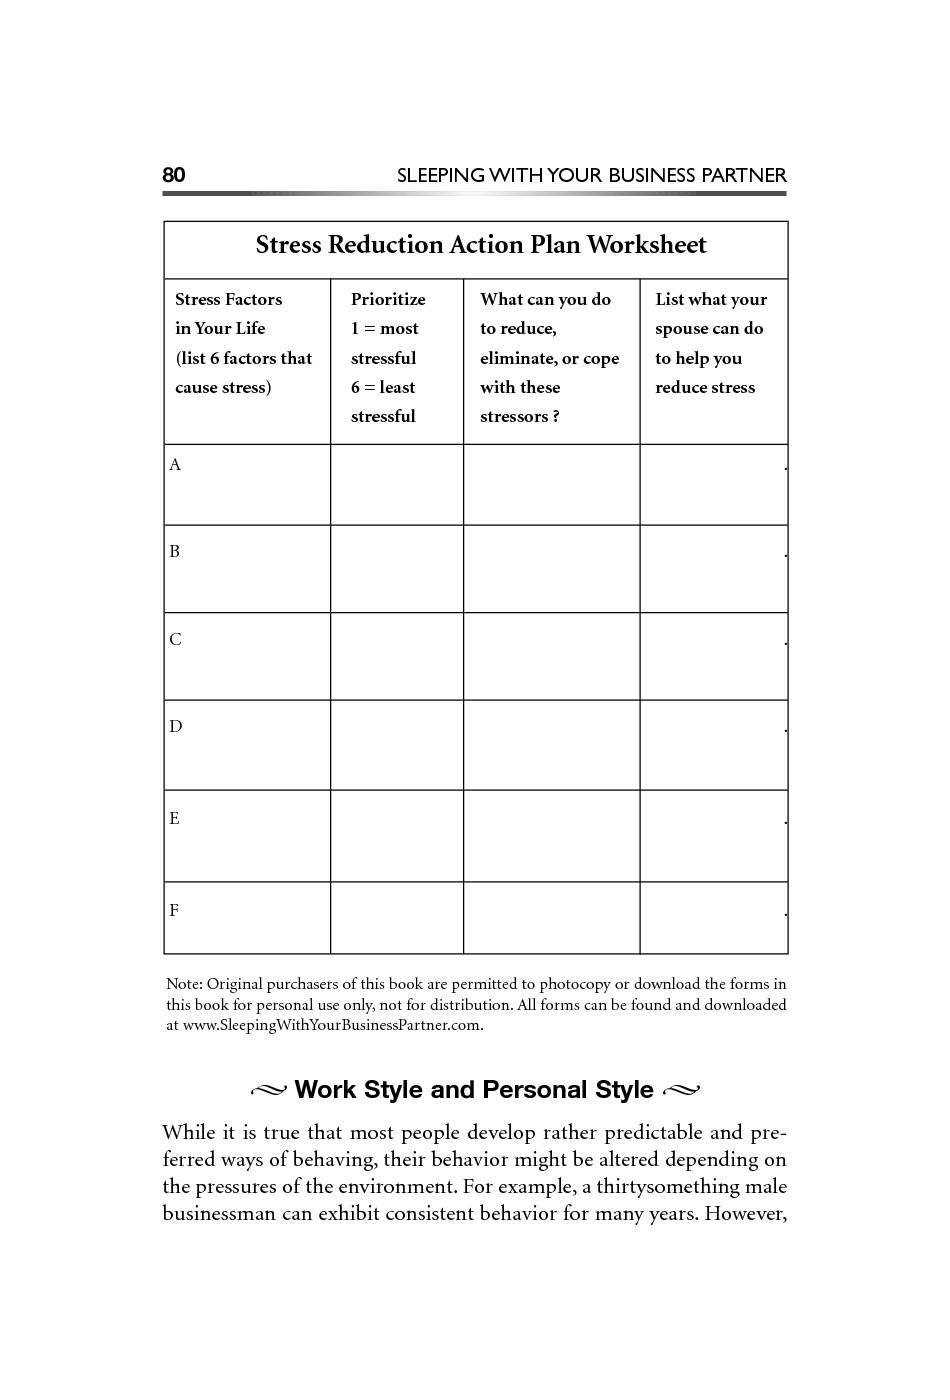 Printables Stress Management Worksheets coping with stress worksheets bing images pinterest images